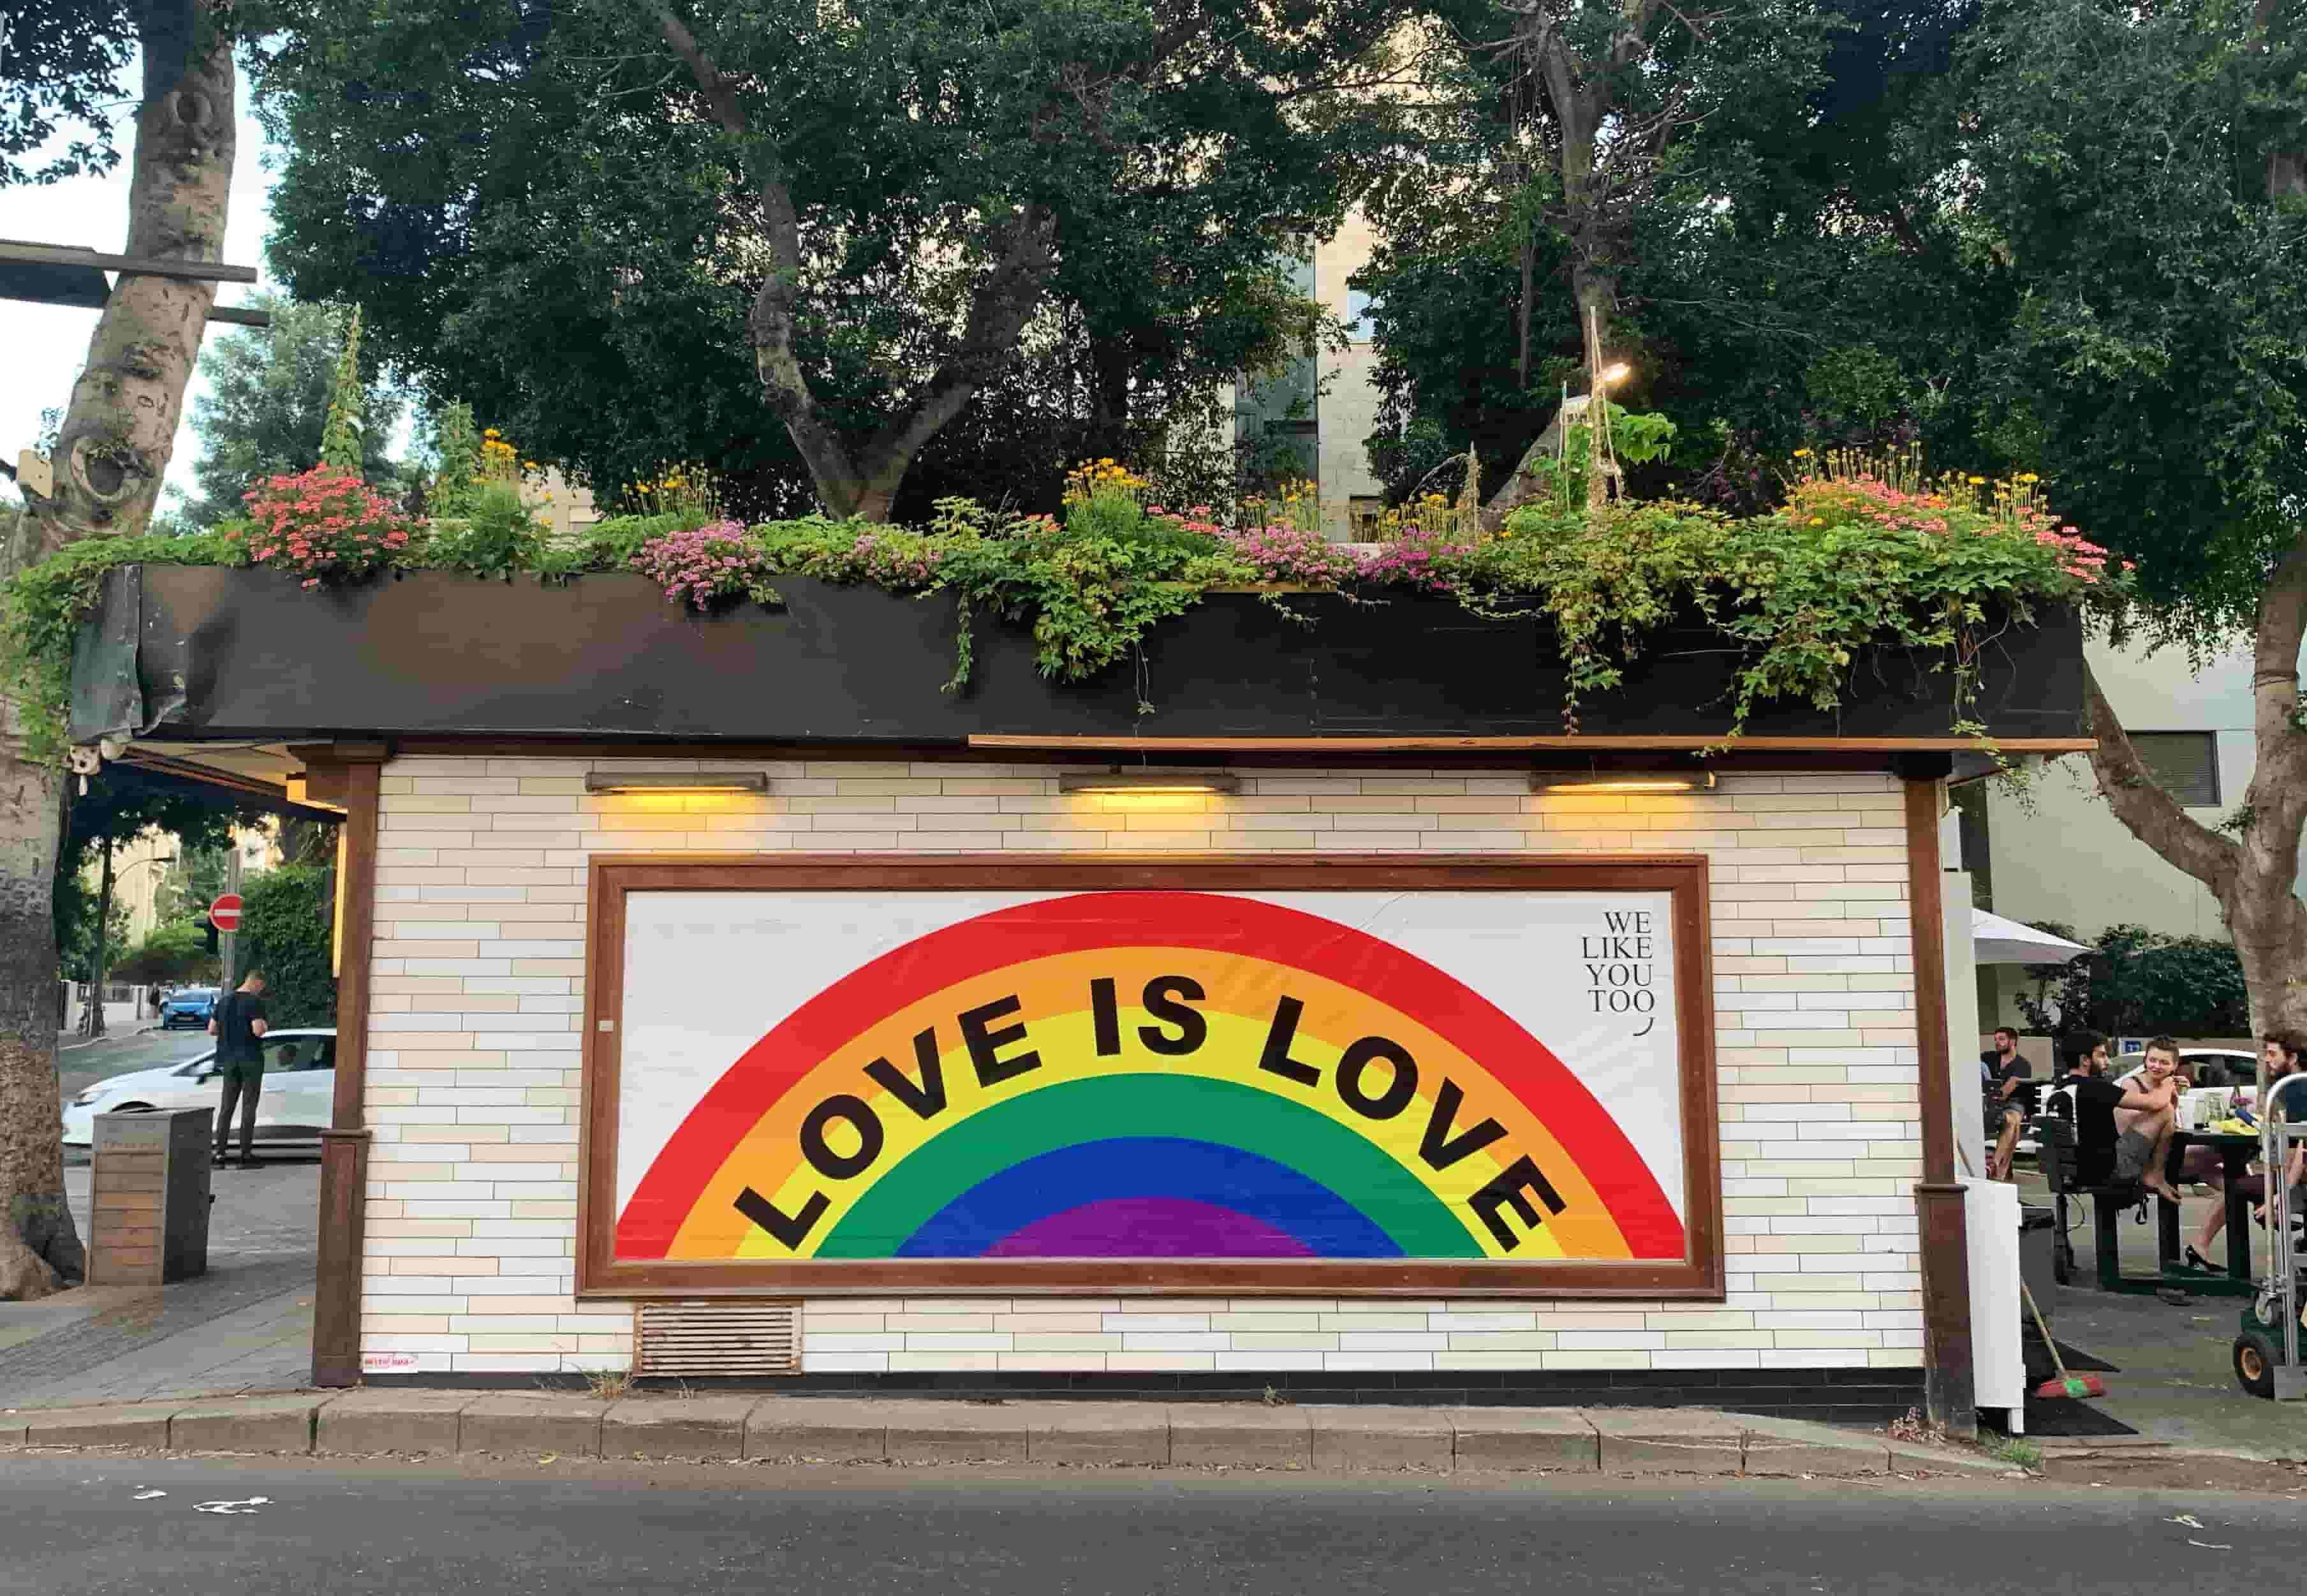 Close-up of a billboard, with 'Love is Love' written across a rainbow